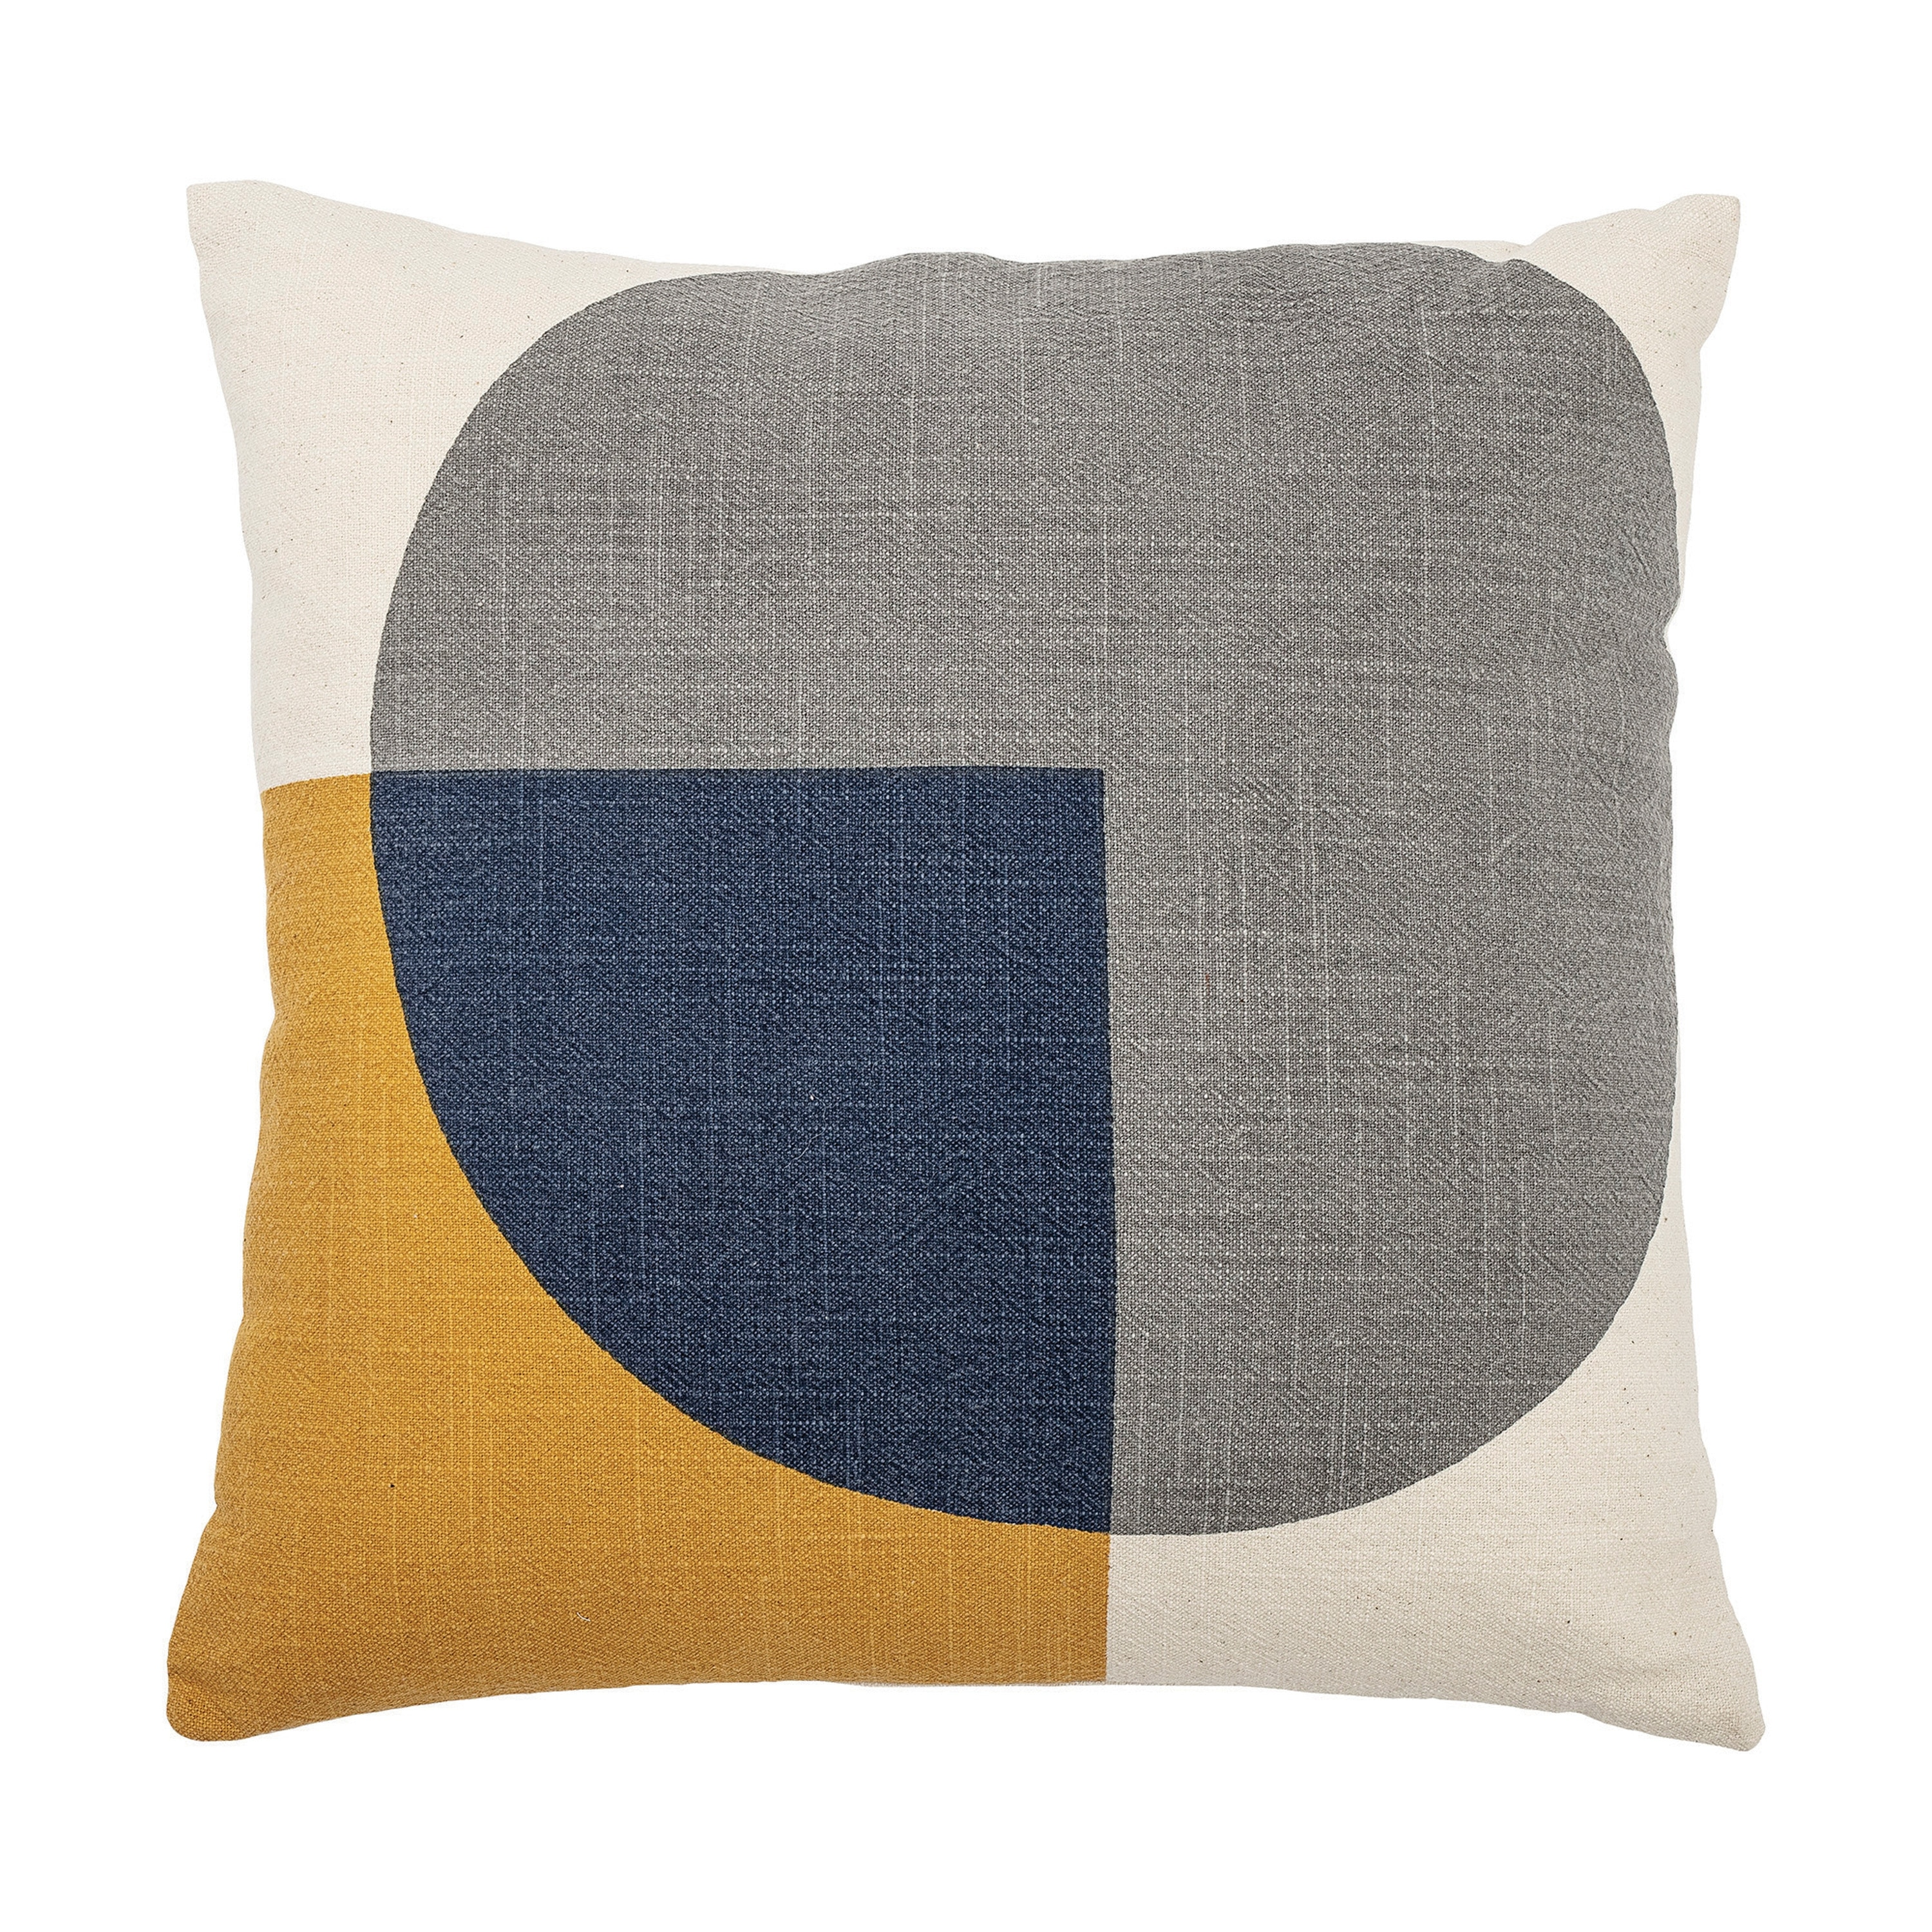 Square Cream Cotton Pillow With Printed Mustard Blue Shapes Solid Cream Back Overstock 31629170